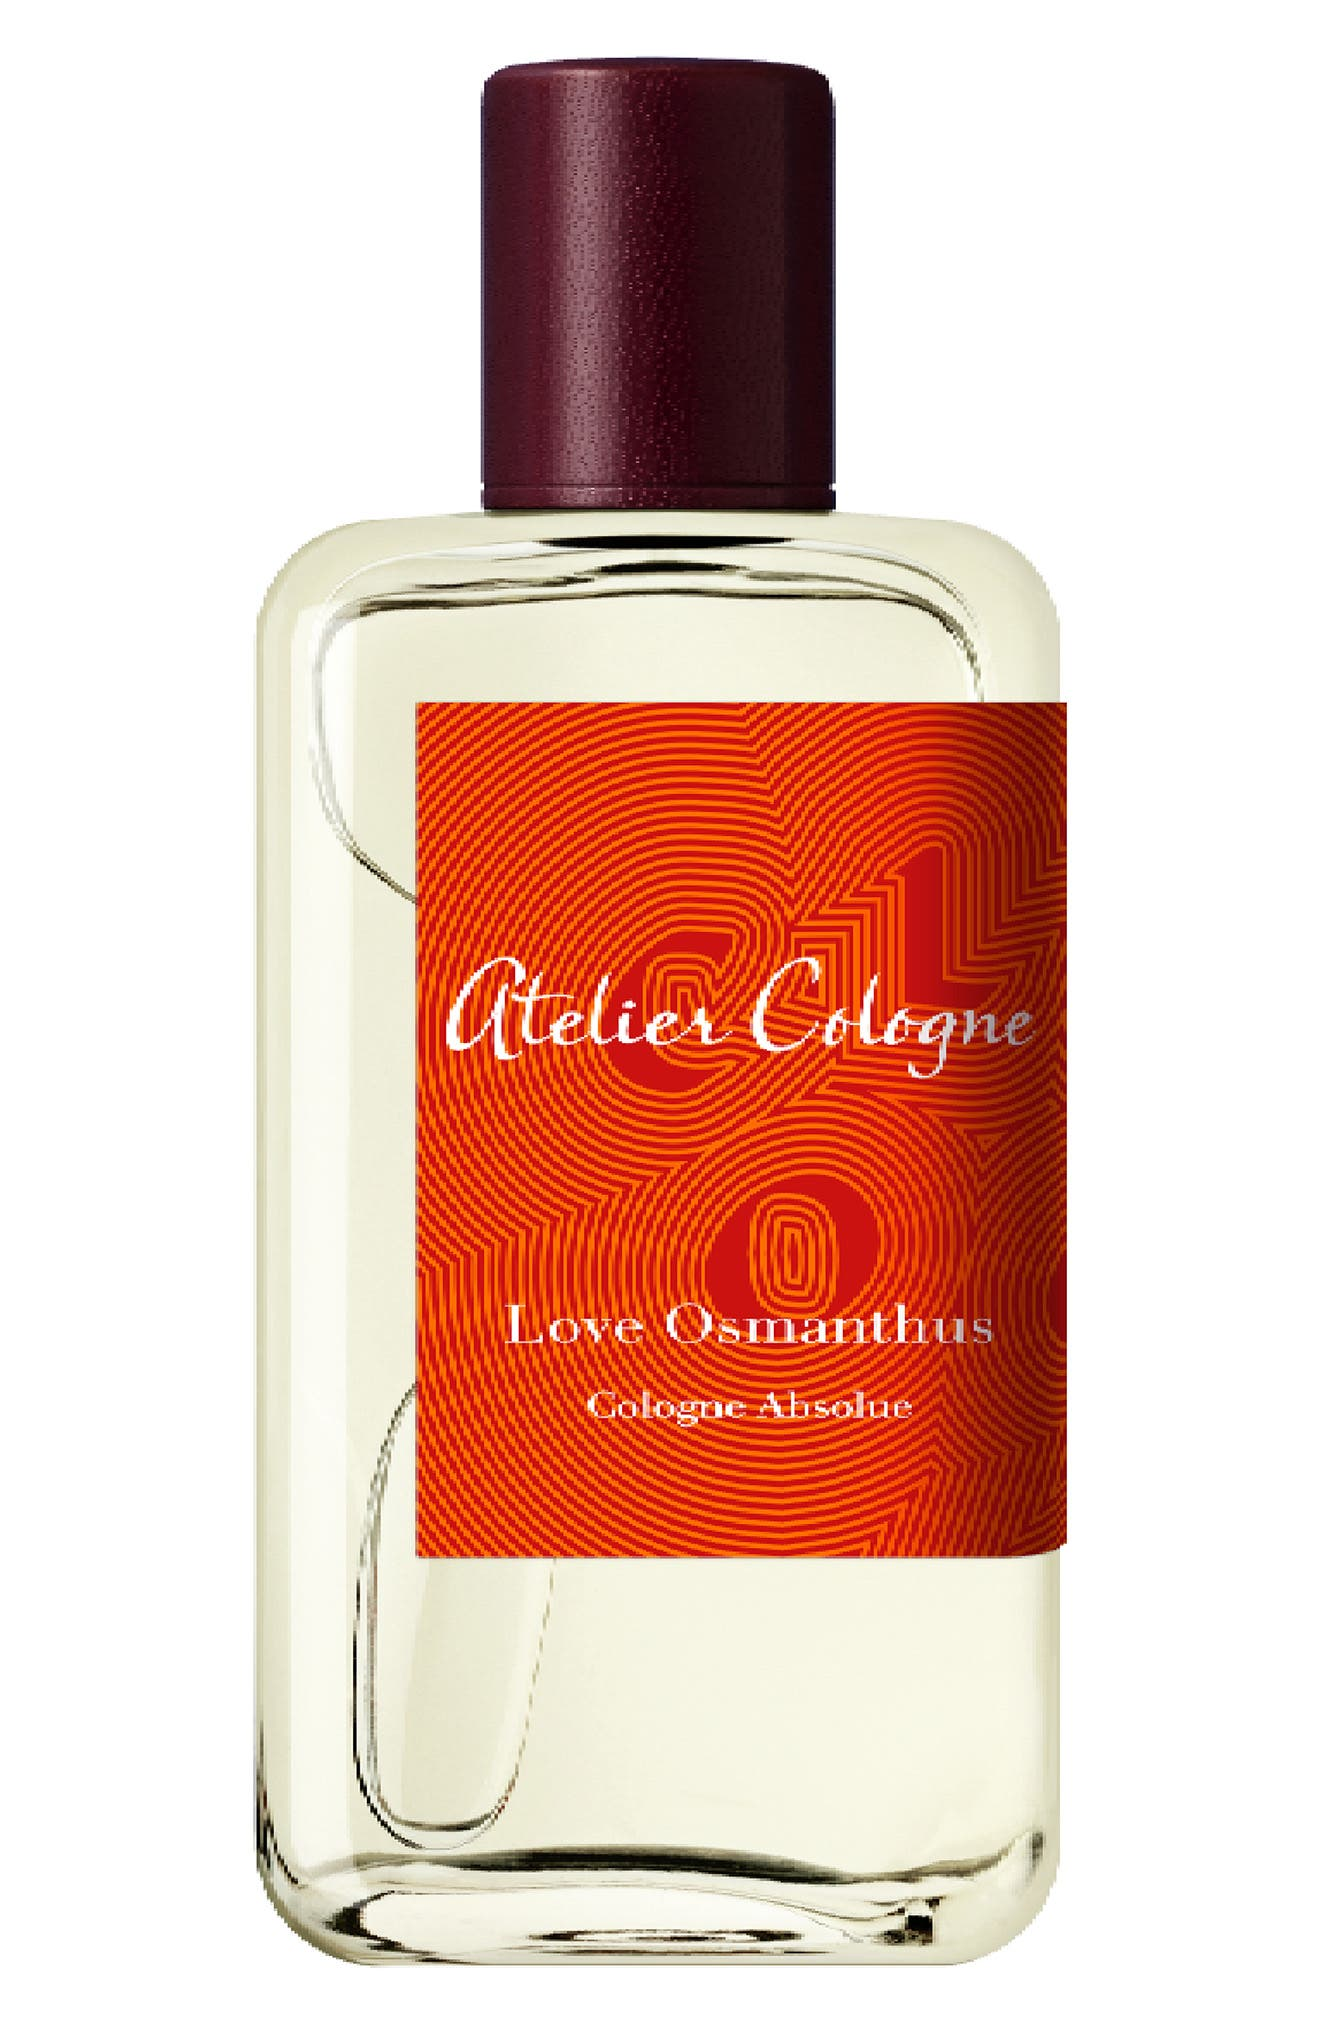 Love Osmanthus Cologne Absolue